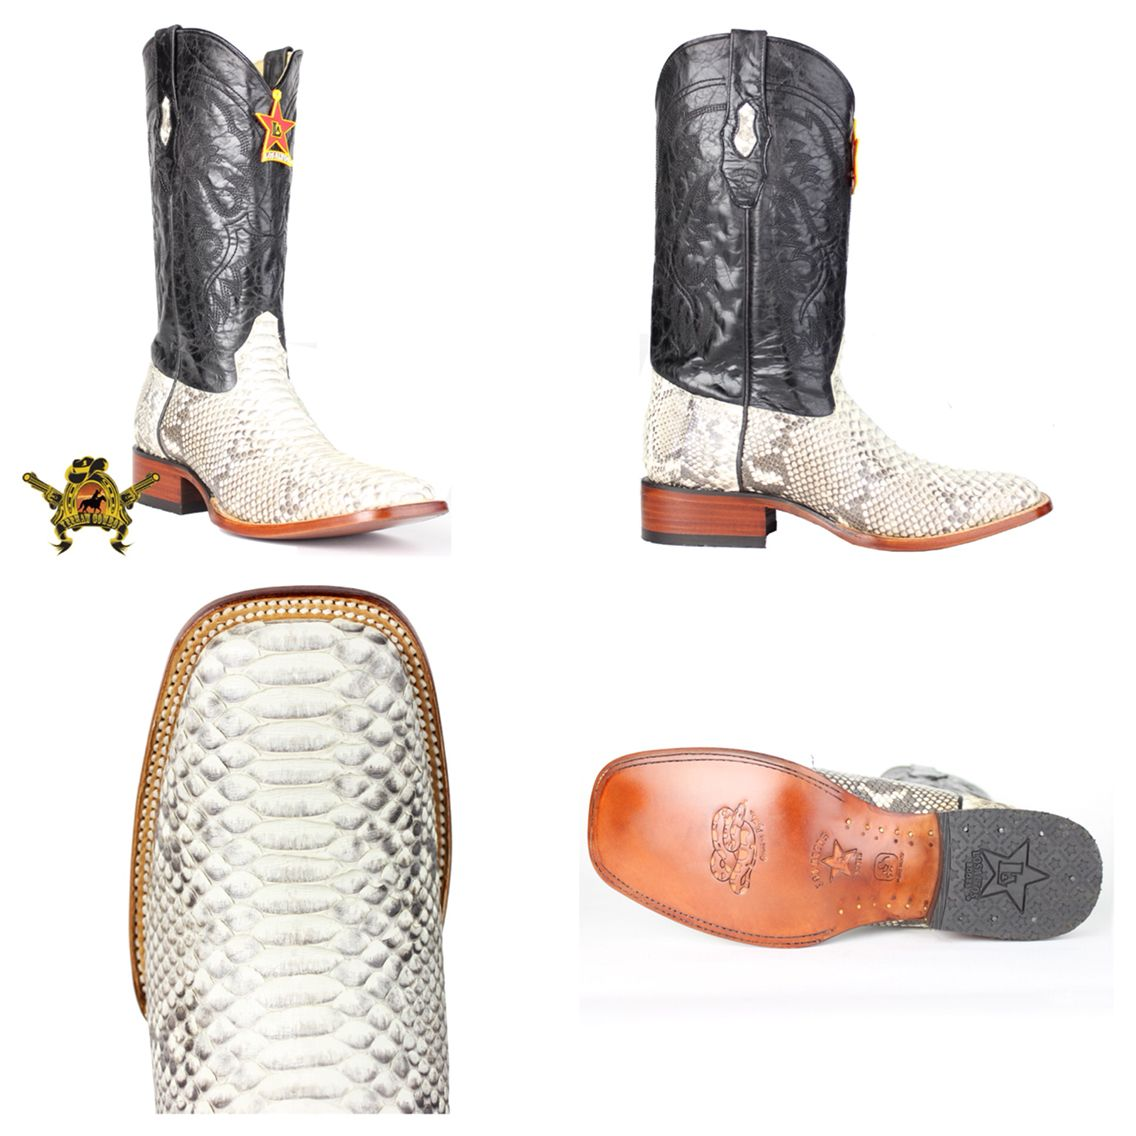 3de6eabe582 Slide your feet into these Los Altos Python square toe boots and ...